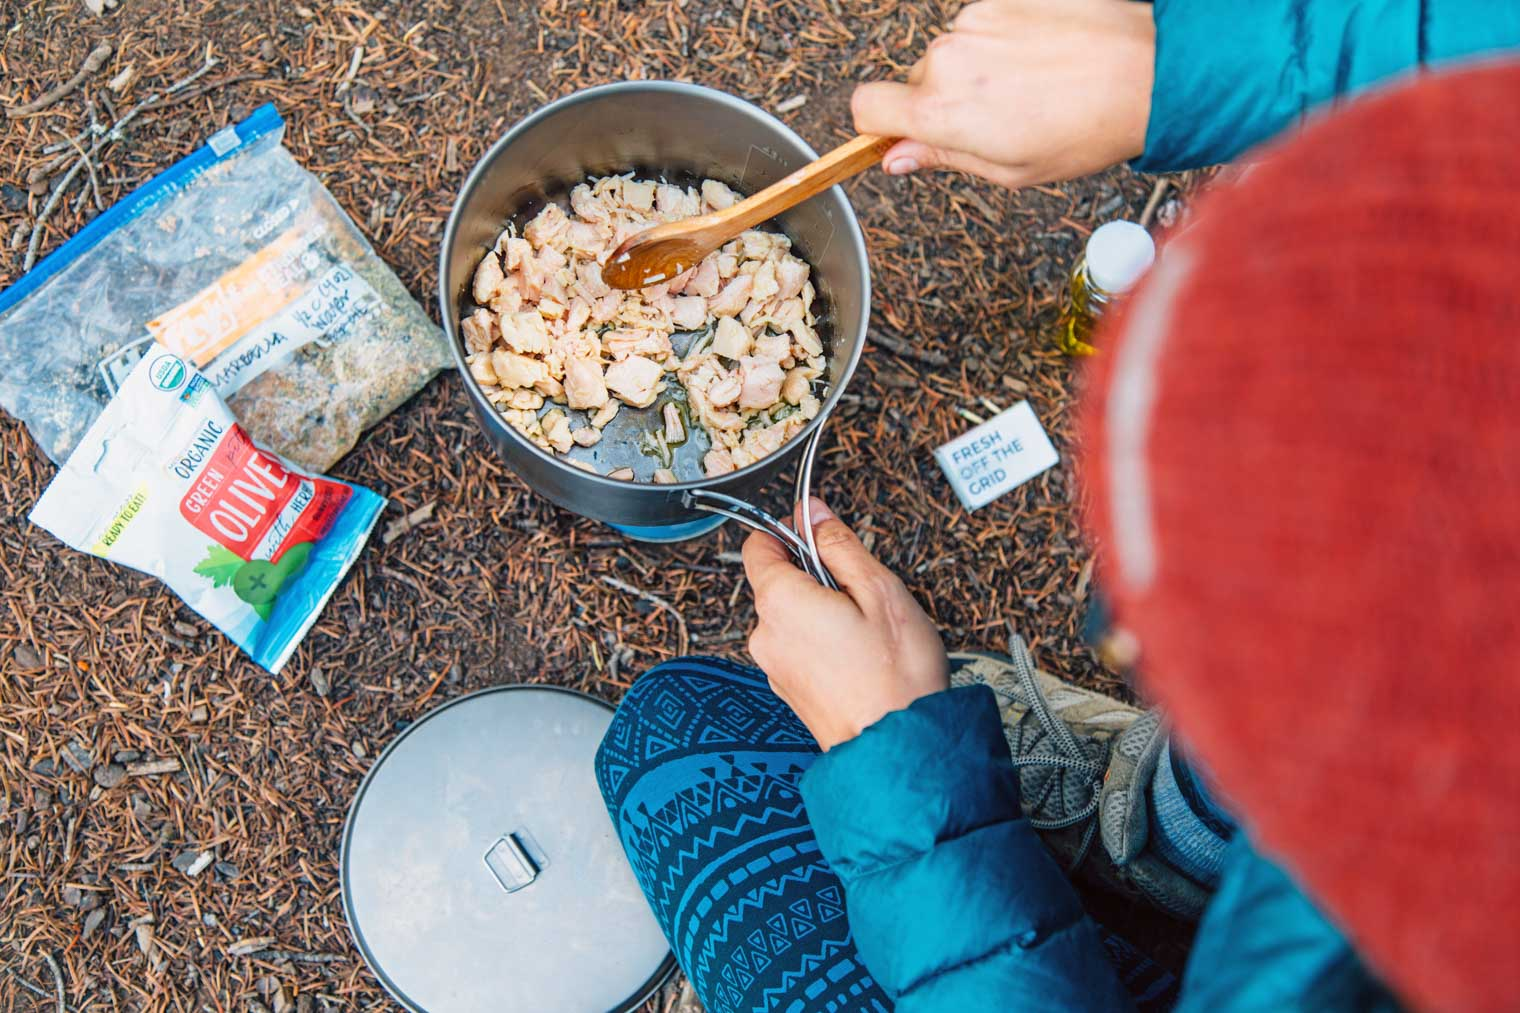 Megan heating pieces of chicken in a backpacking pot